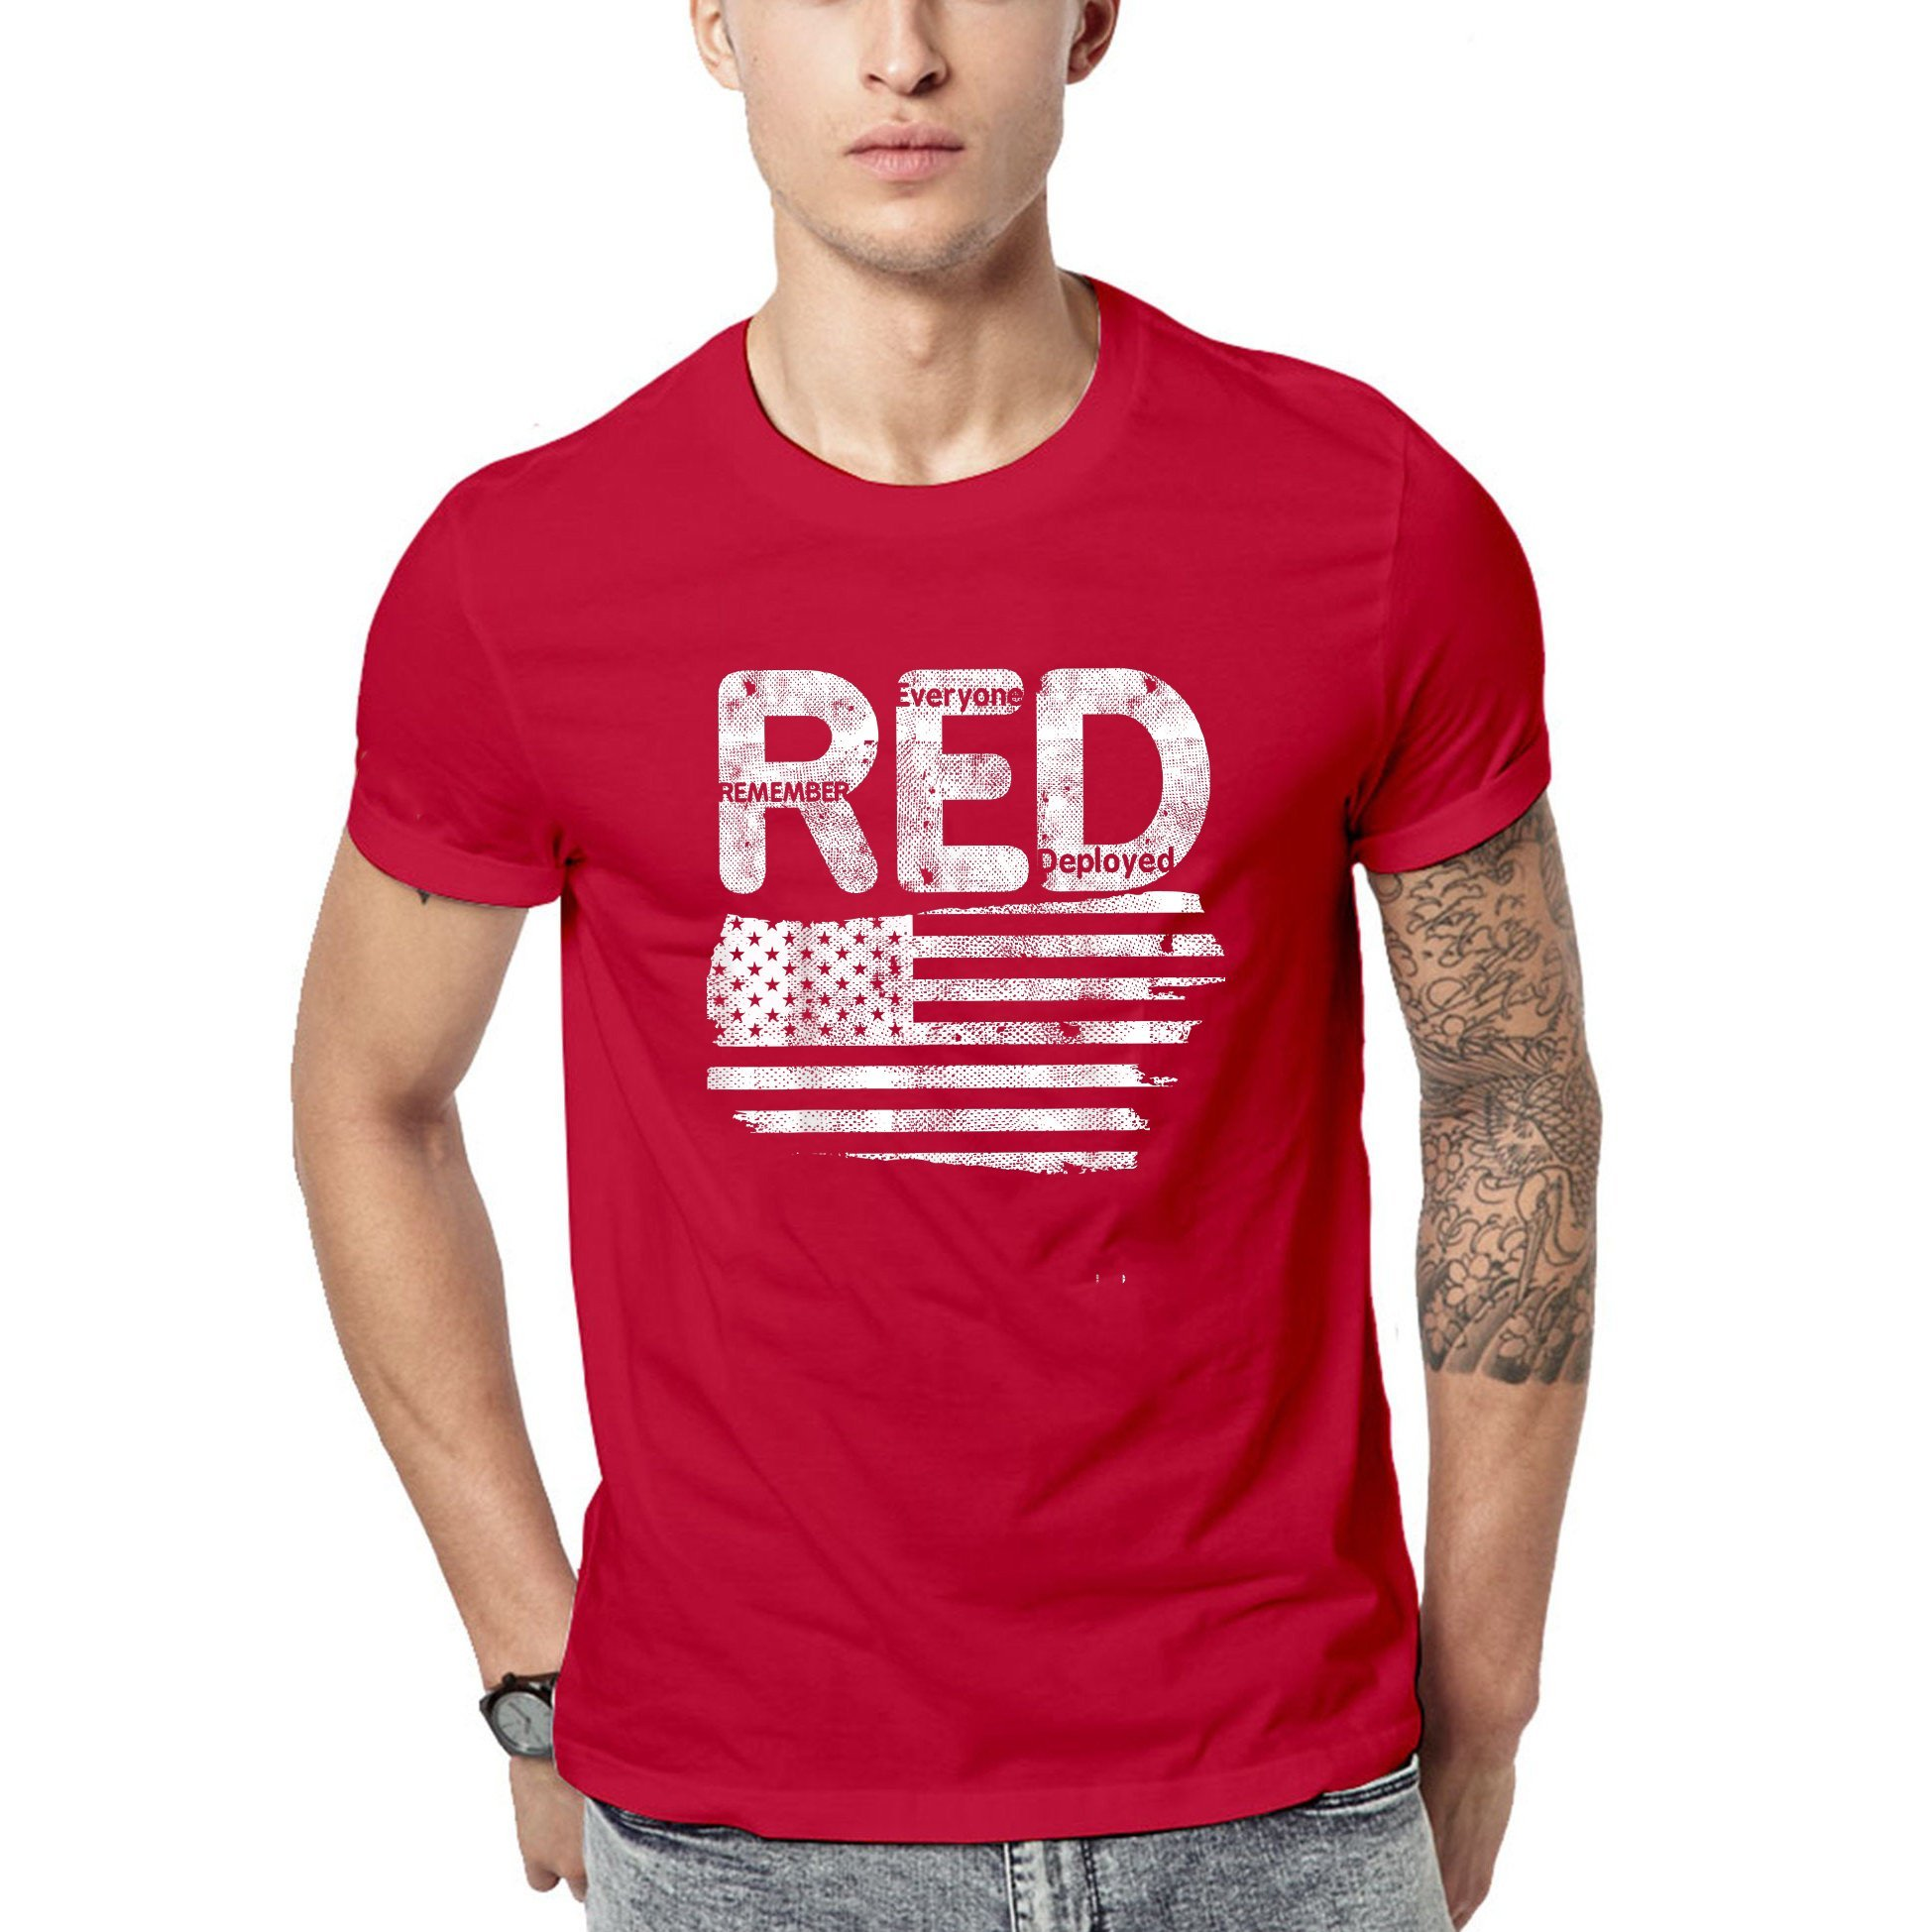 Red friday - US flag remember everyone veteran deployed red friday t-shirt - GST